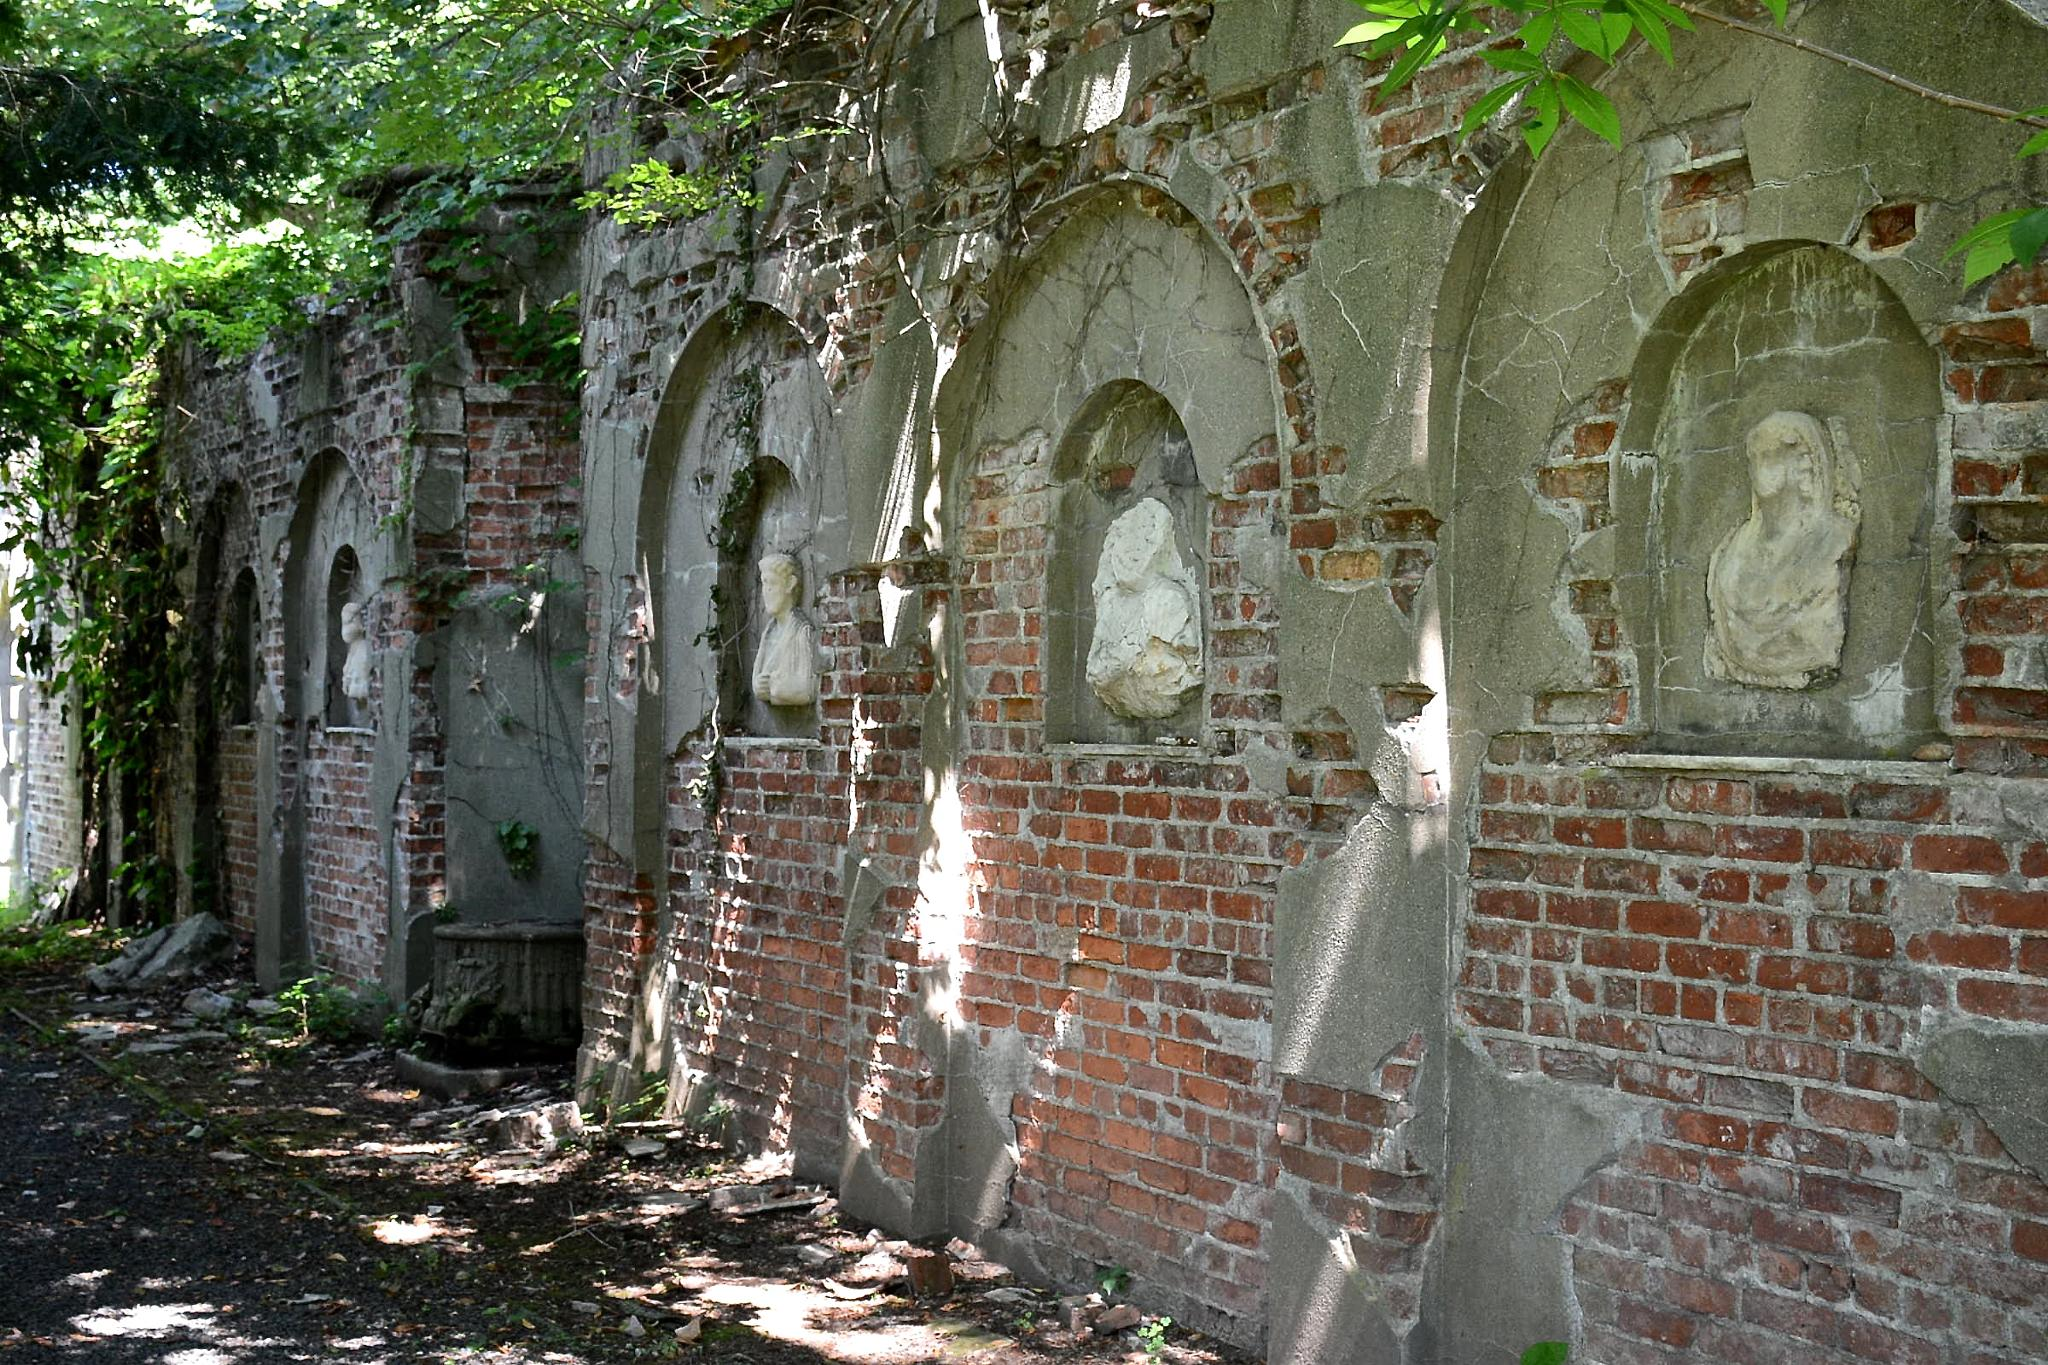 Memorial in Ruins by Kathy Lebron Photography